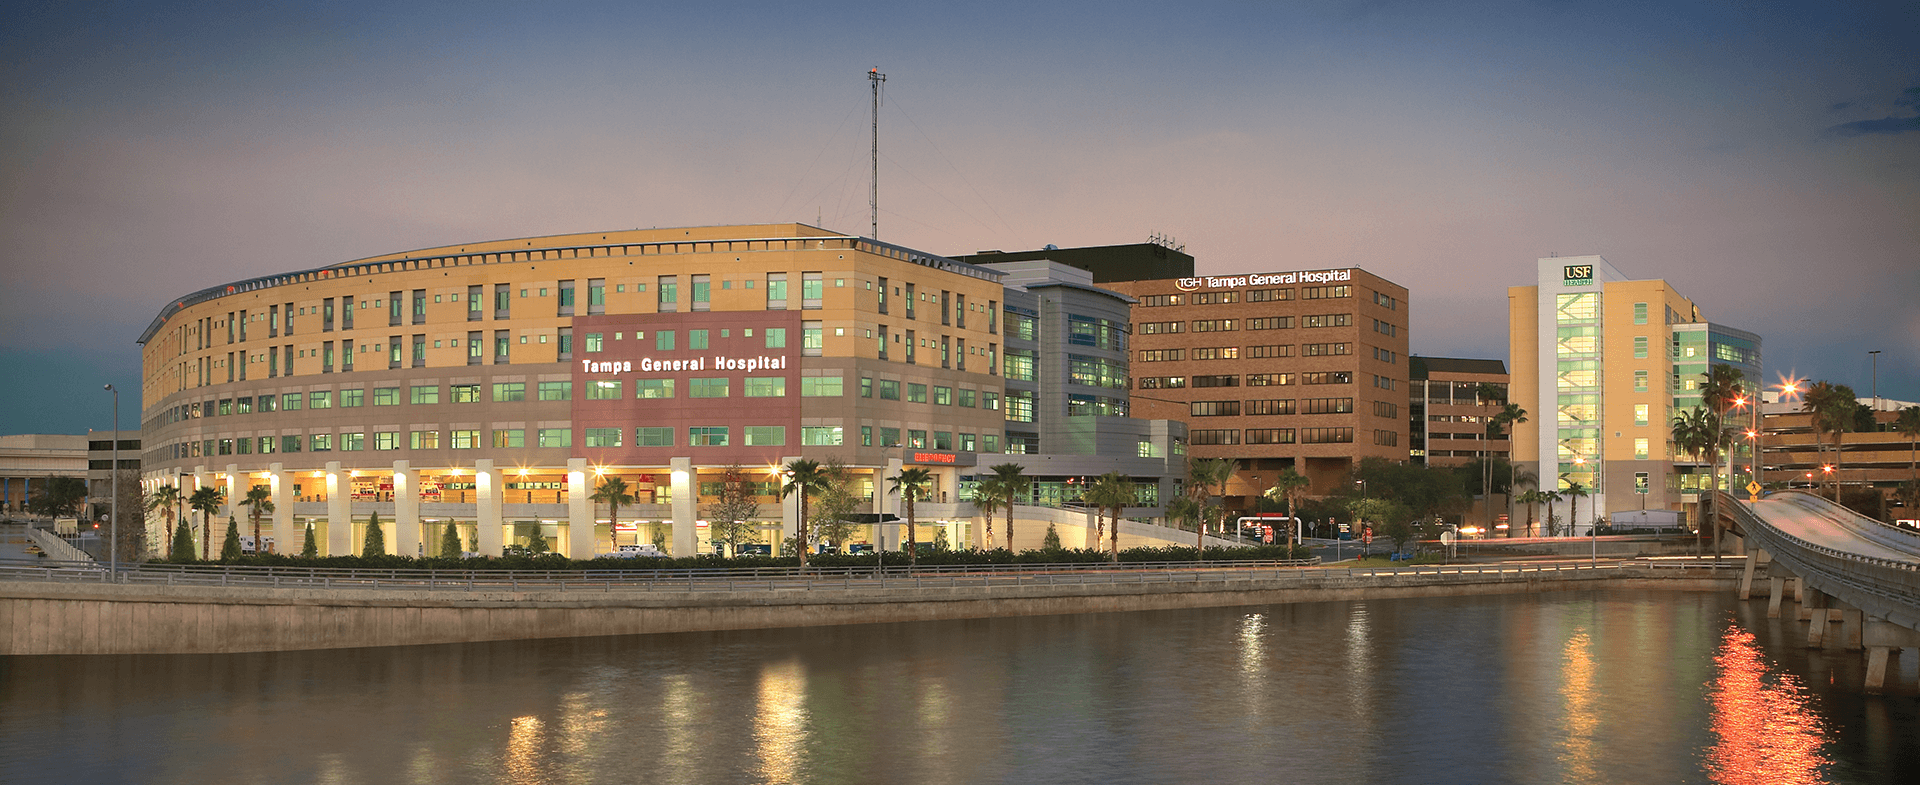 A photo of tampa general hospital